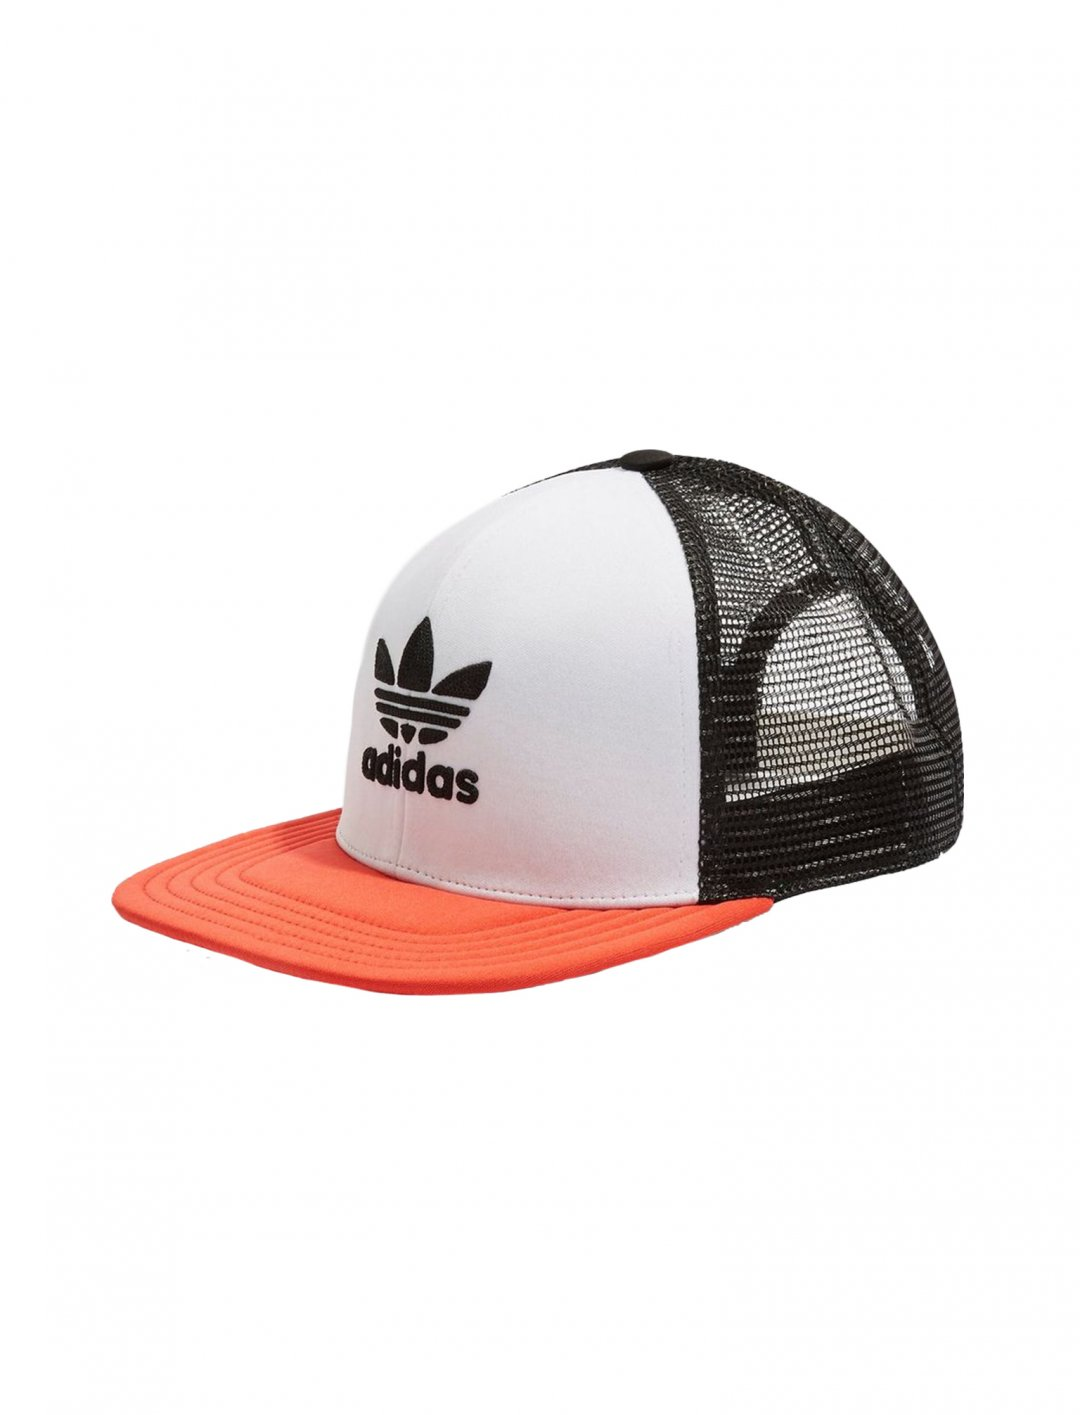 "Adidas Trucker Ca {""id"":16,""product_section_id"":1,""name"":""Accessories"",""order"":15} Adidas"